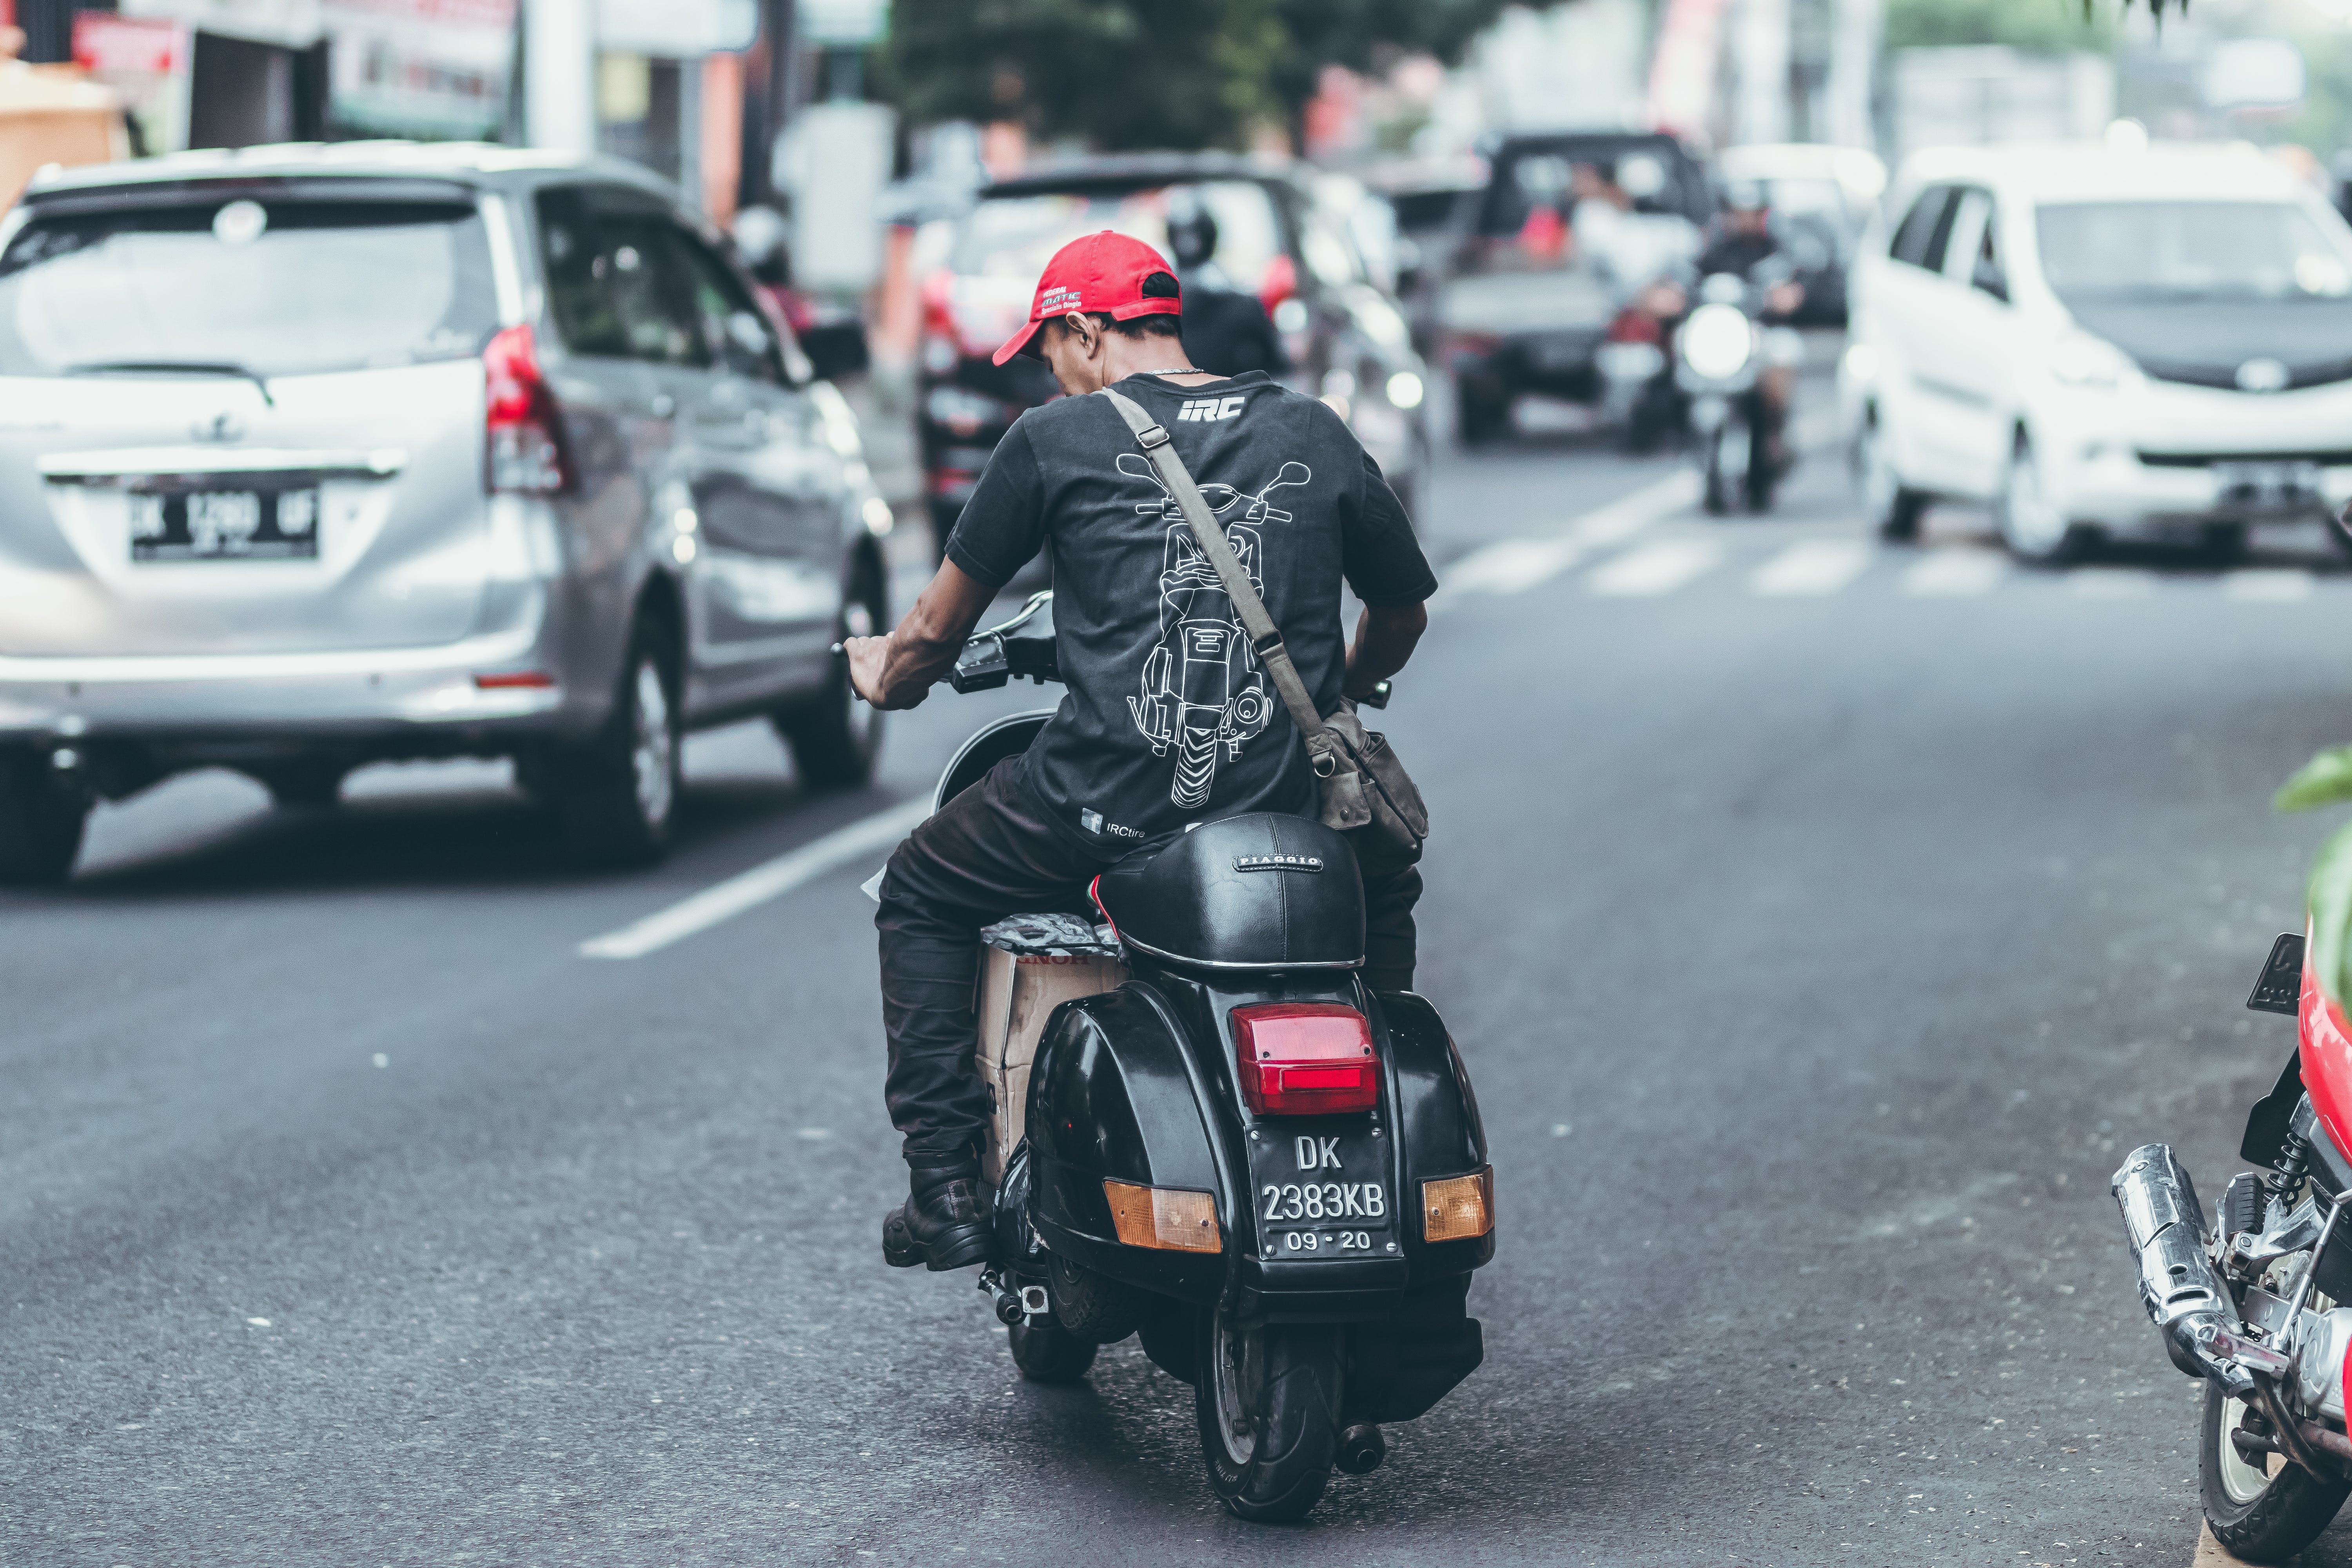 Photo of Man Riding Motorcycle on the Road